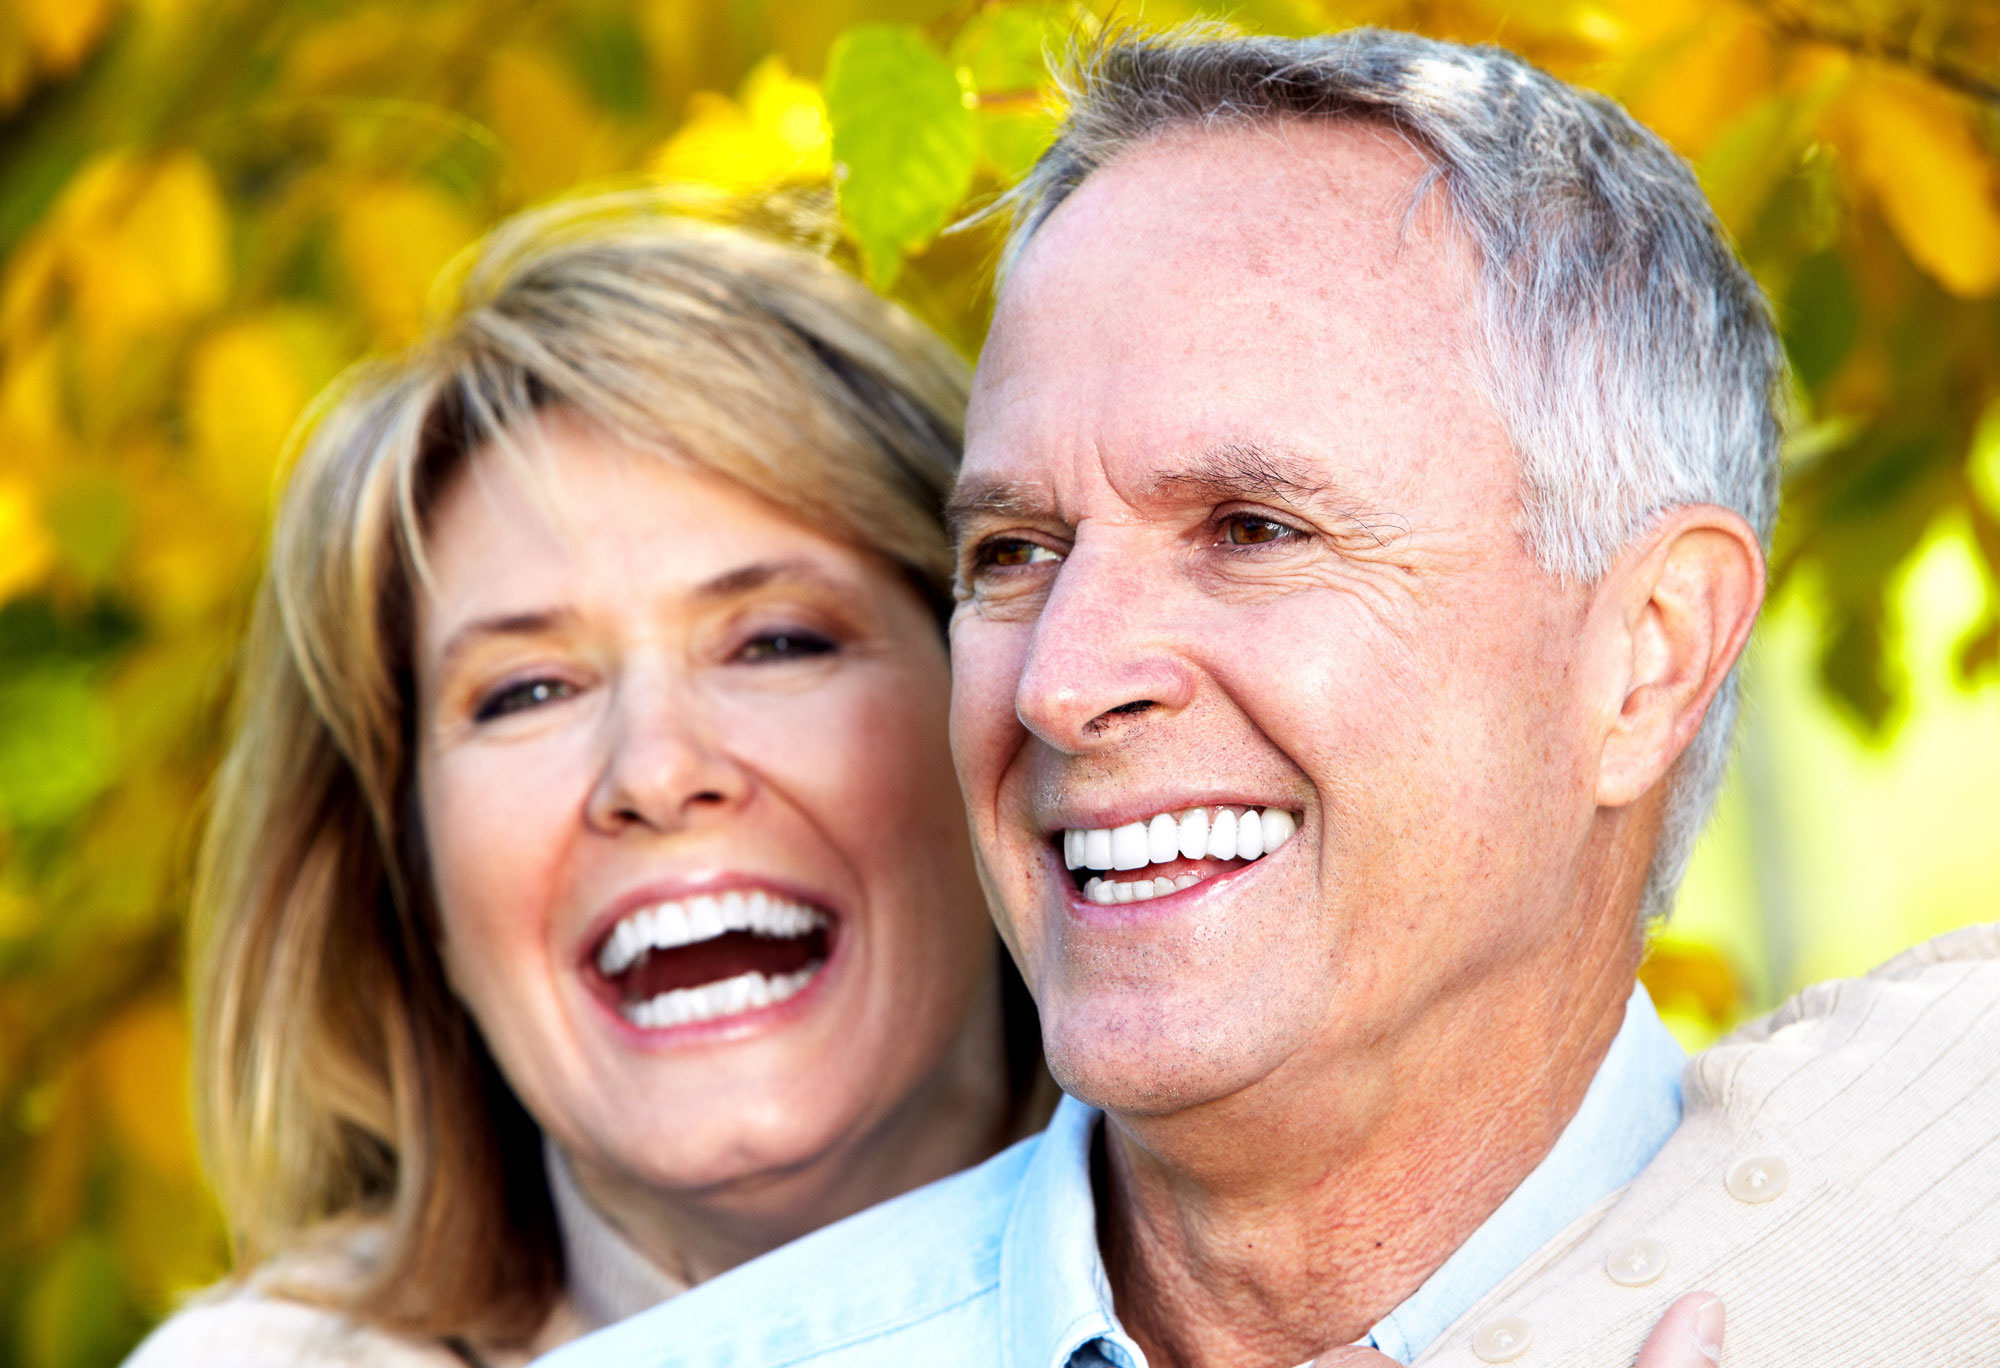 7 Important Tips When an Elderly Is Getting Dental Implants